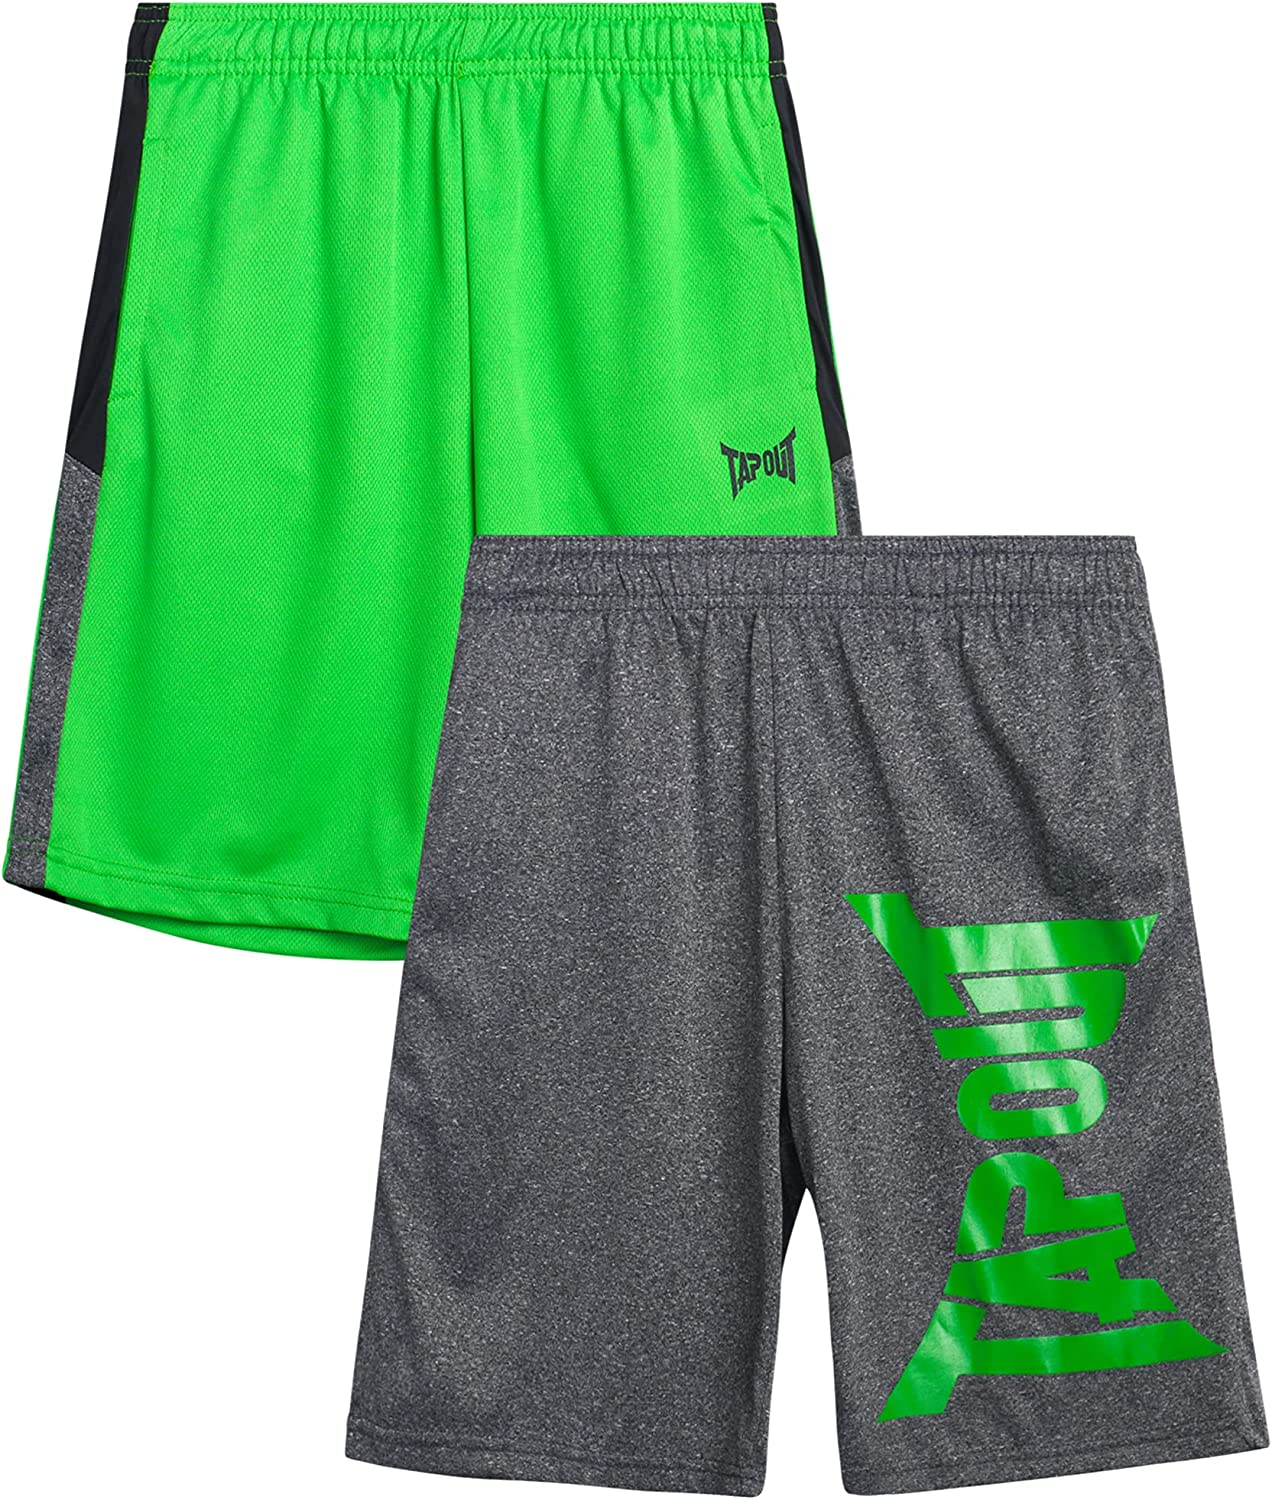 TAPOUT Boys' Athletic Shorts - Sho Performance Brand Cheap Sale Venue Basketball Inventory cleanup selling sale Active